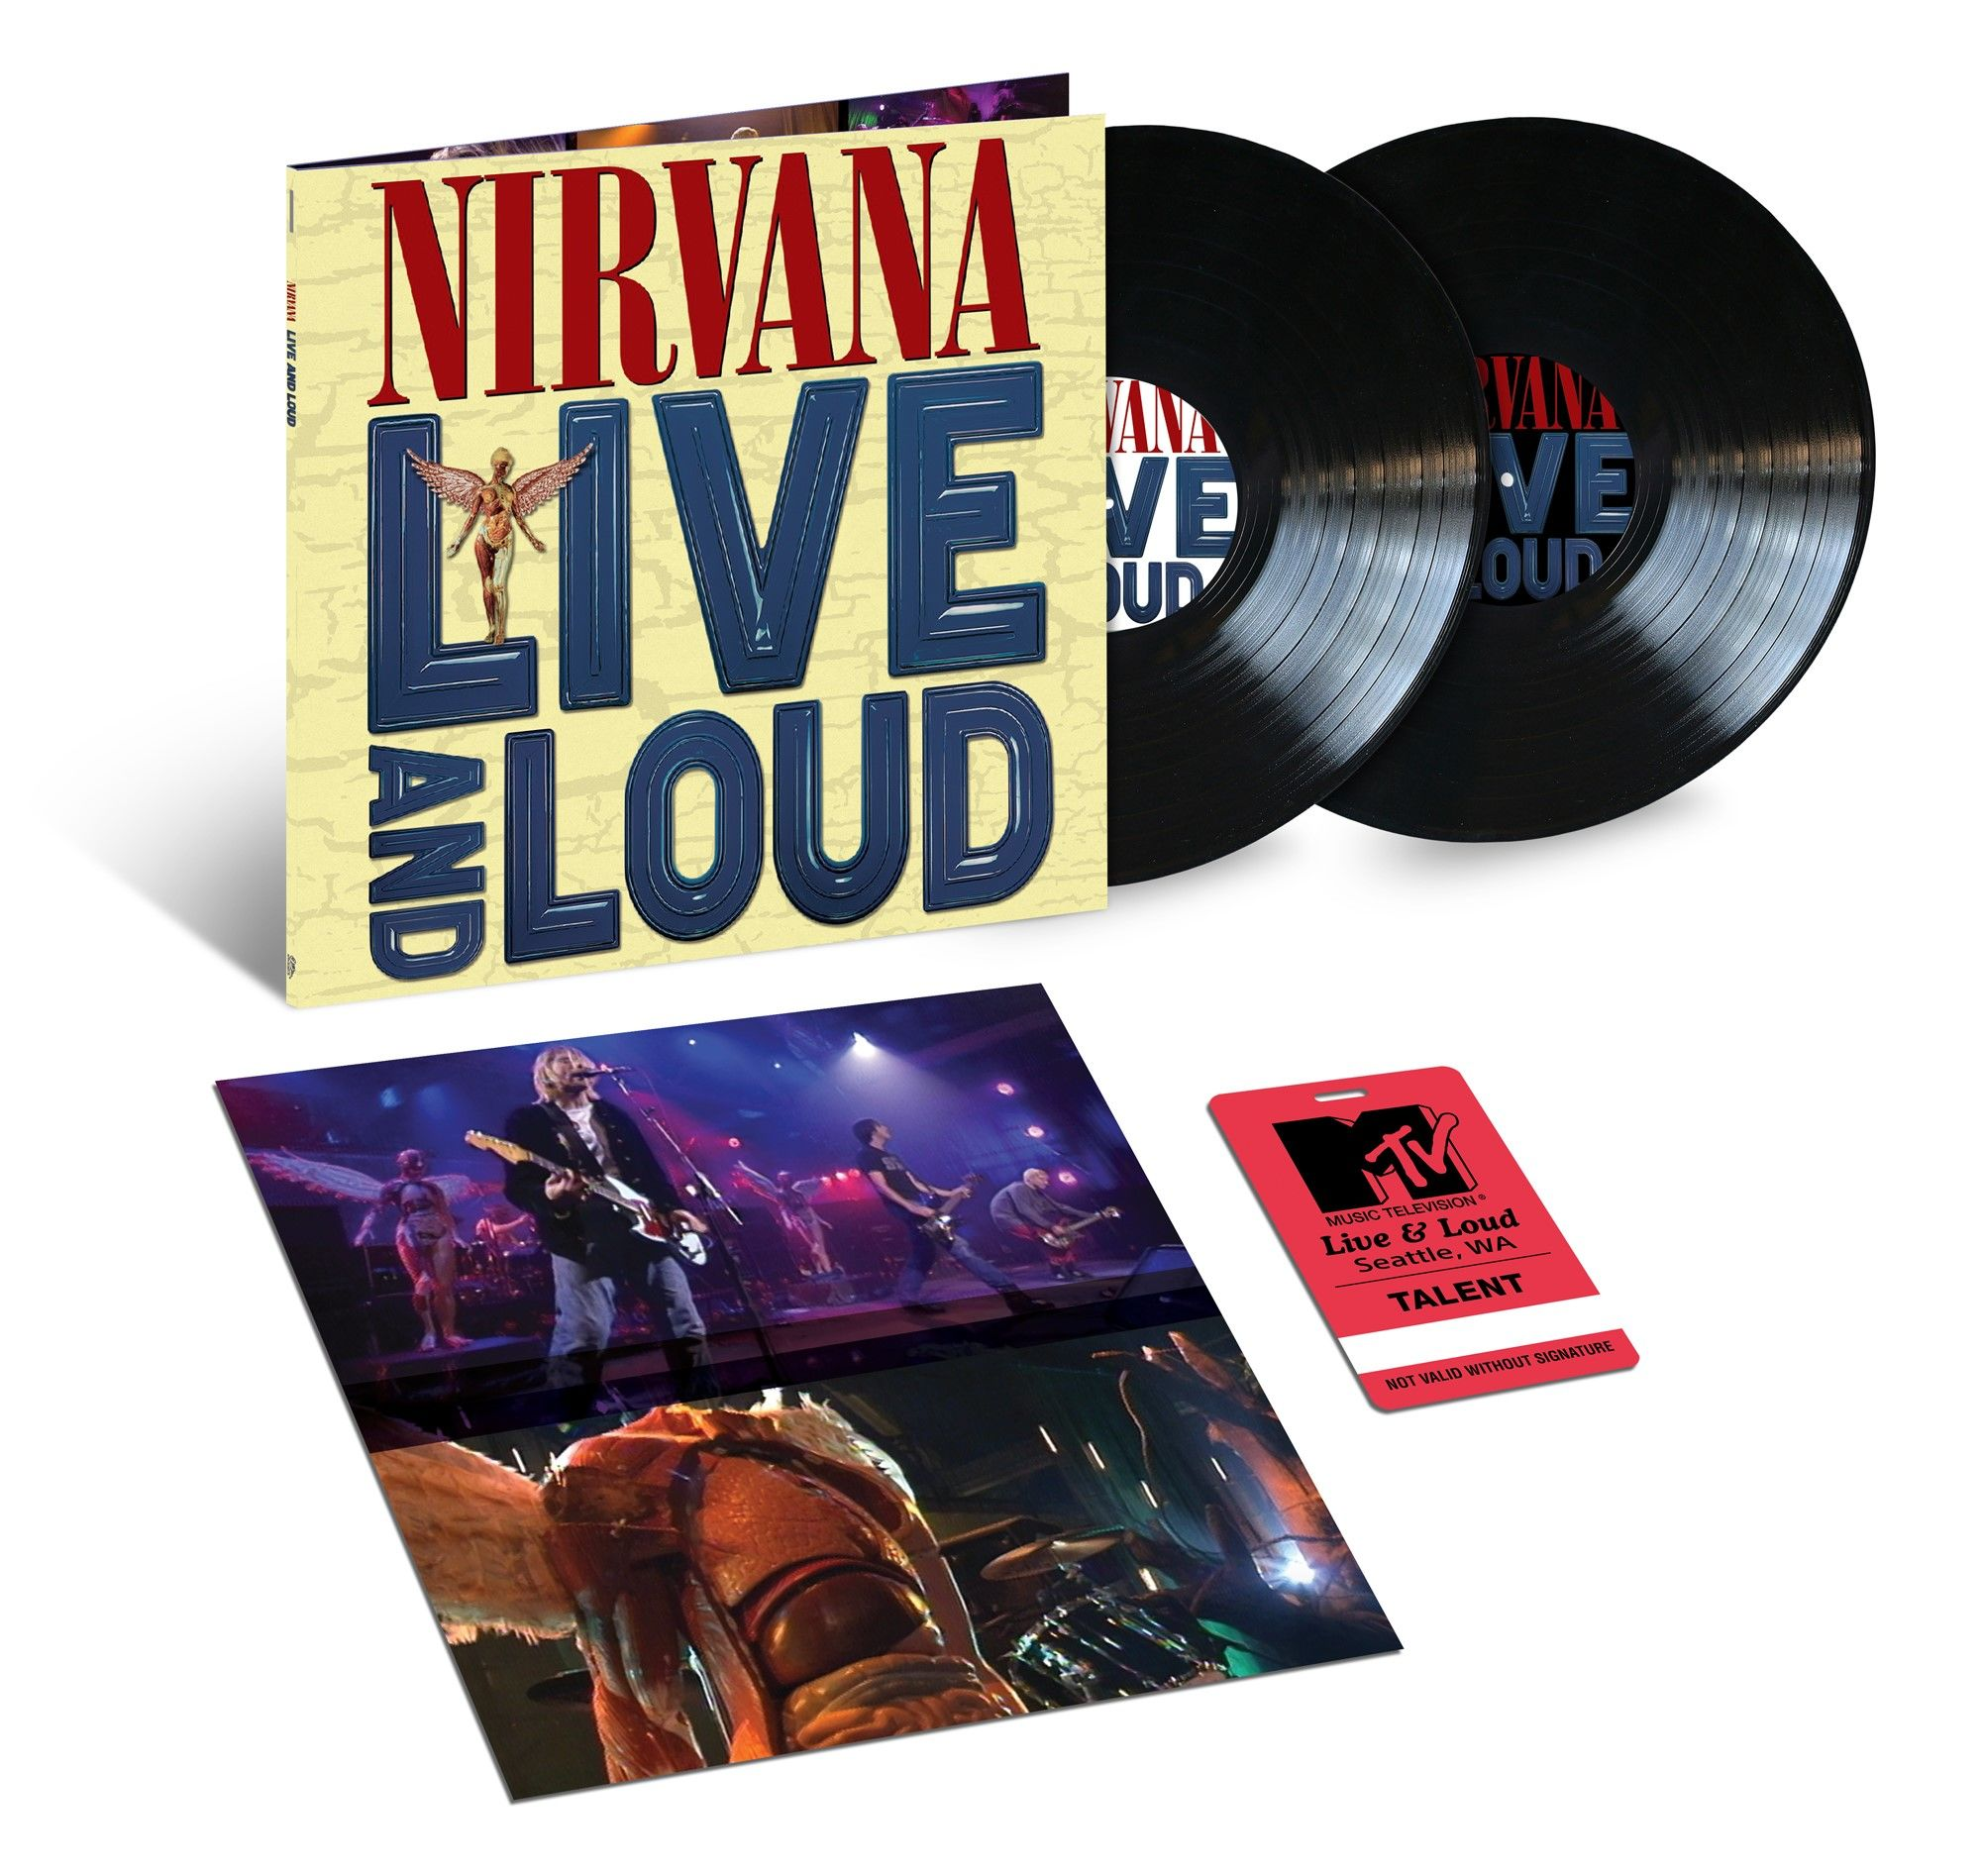 News – Nirvana – Live And Loud – Seattle Concert – On YouTube